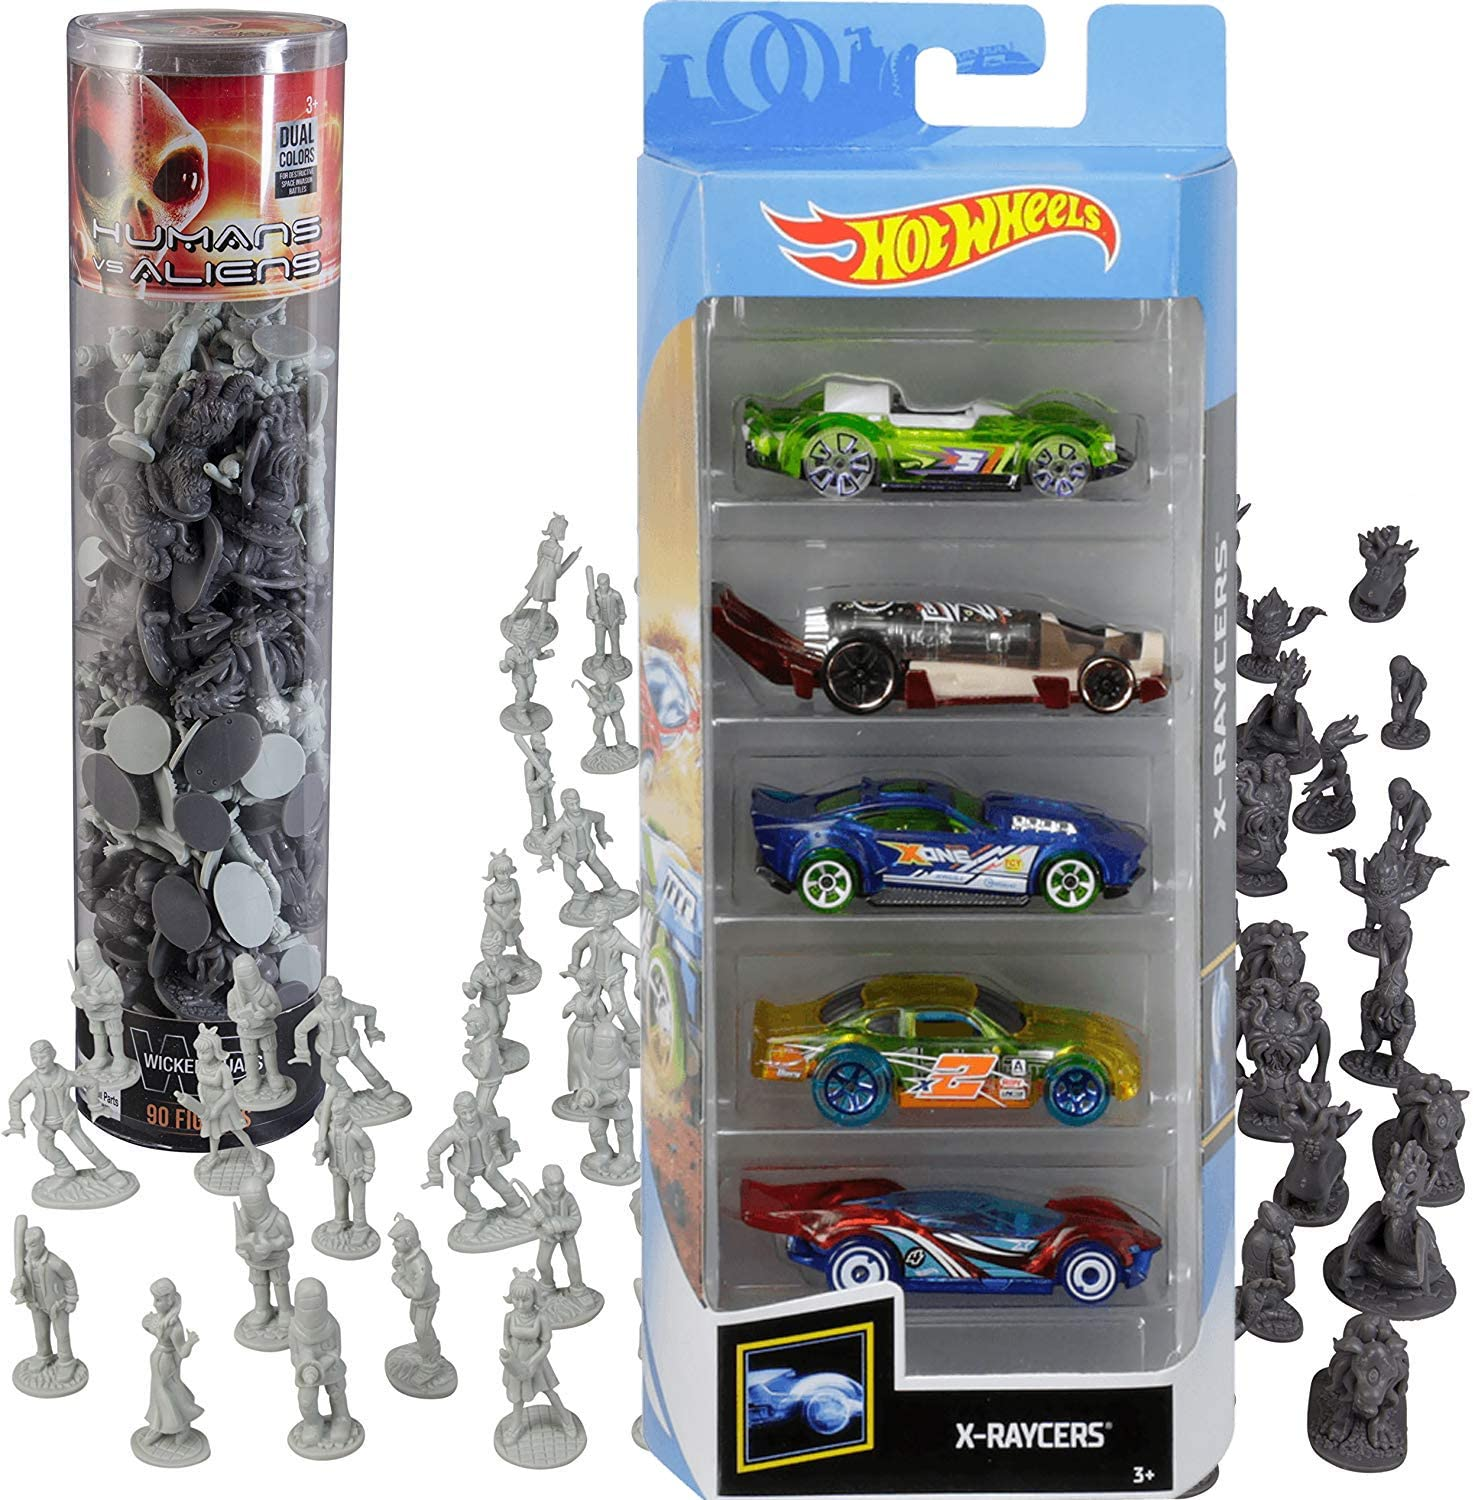 Hot Wheels X-Race Sci-Fi 5-Pack X-Raycers Sci-Fi Action Battle Bundled with Space Monster Aliens + Human Army Mini Figures 2 Items: Amazon.es: Juguetes y juegos